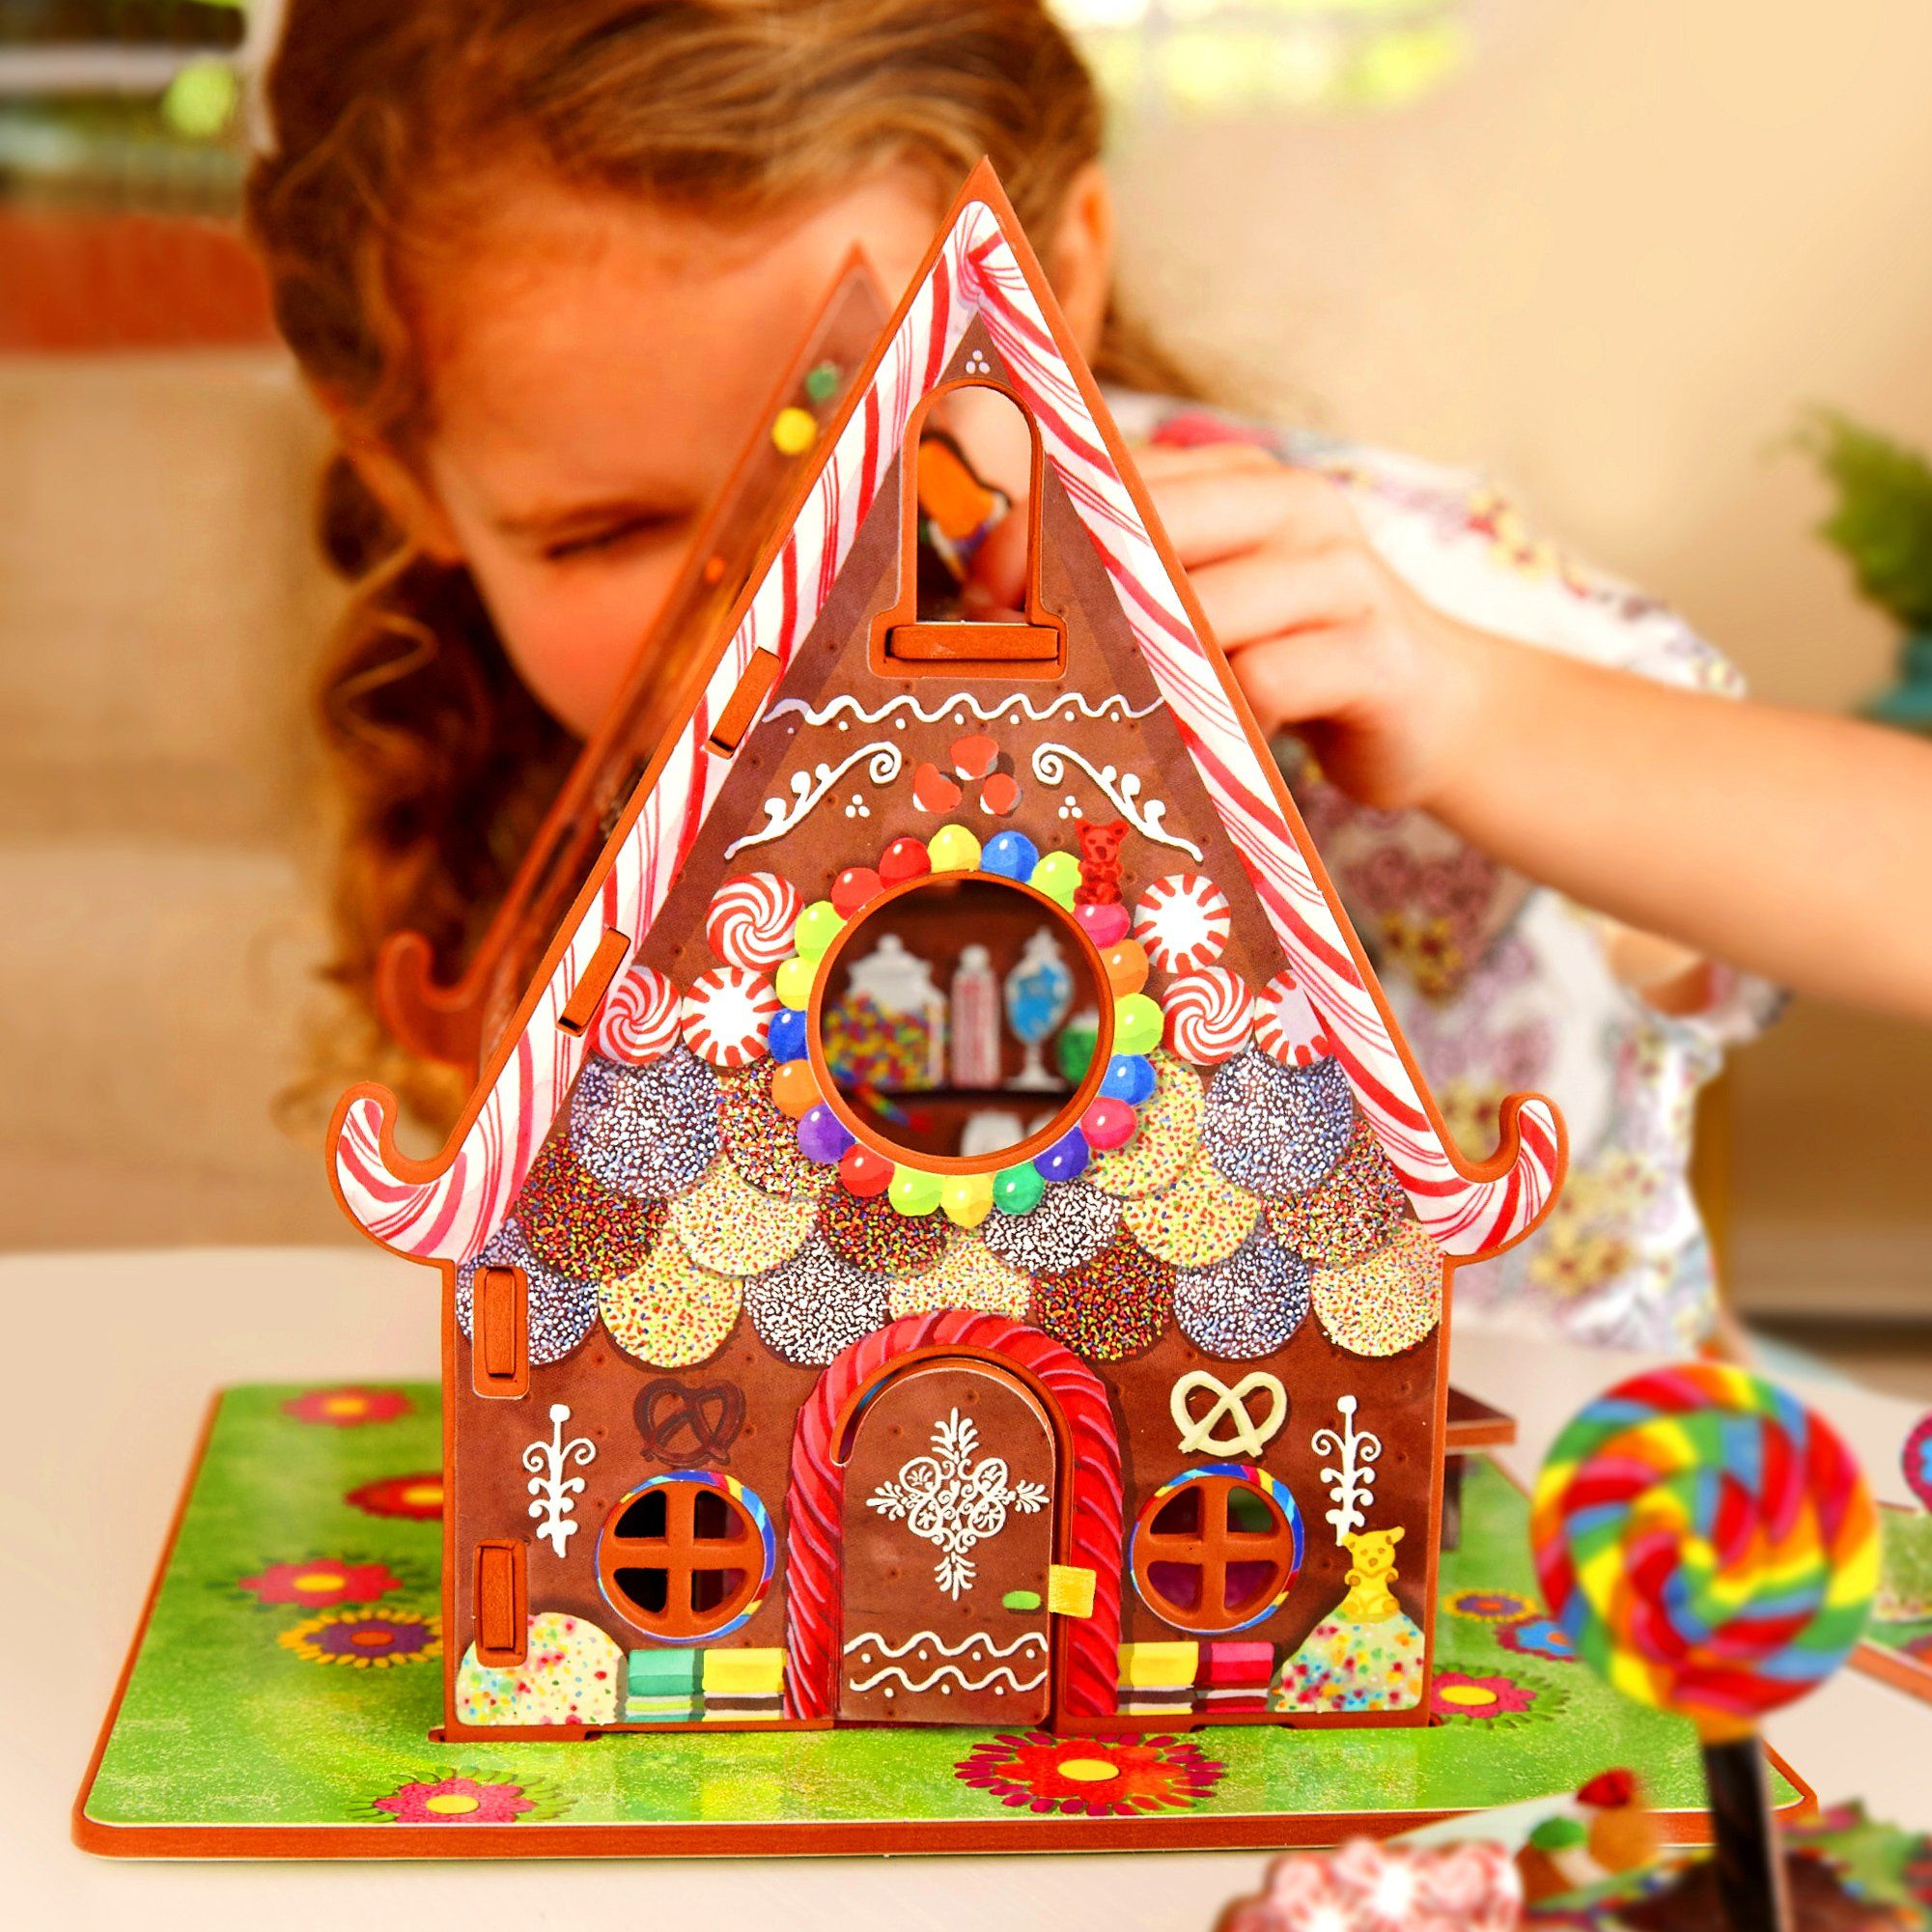 Hansel and Gretel Candy house, Preschool toys, Toy house